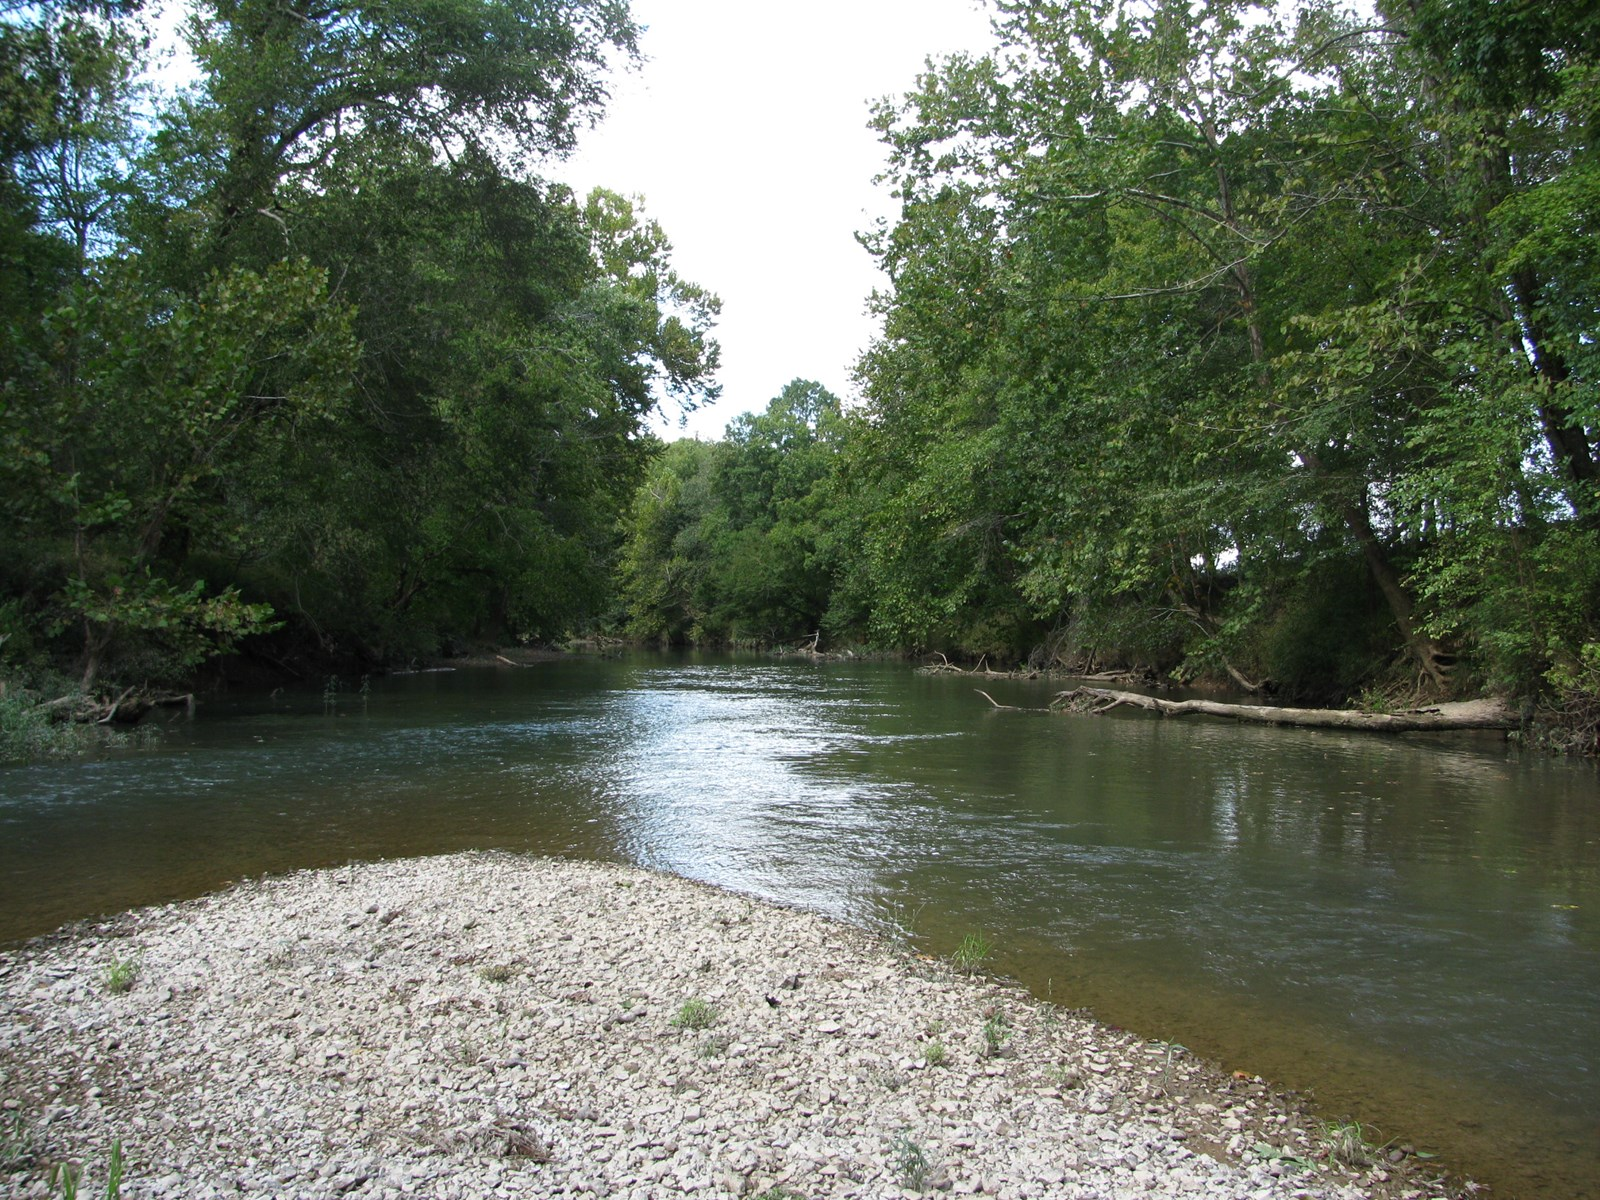 INDIAN CREEK LOT FOR SALE IN SAVANNAH, TN, WATERFRONT